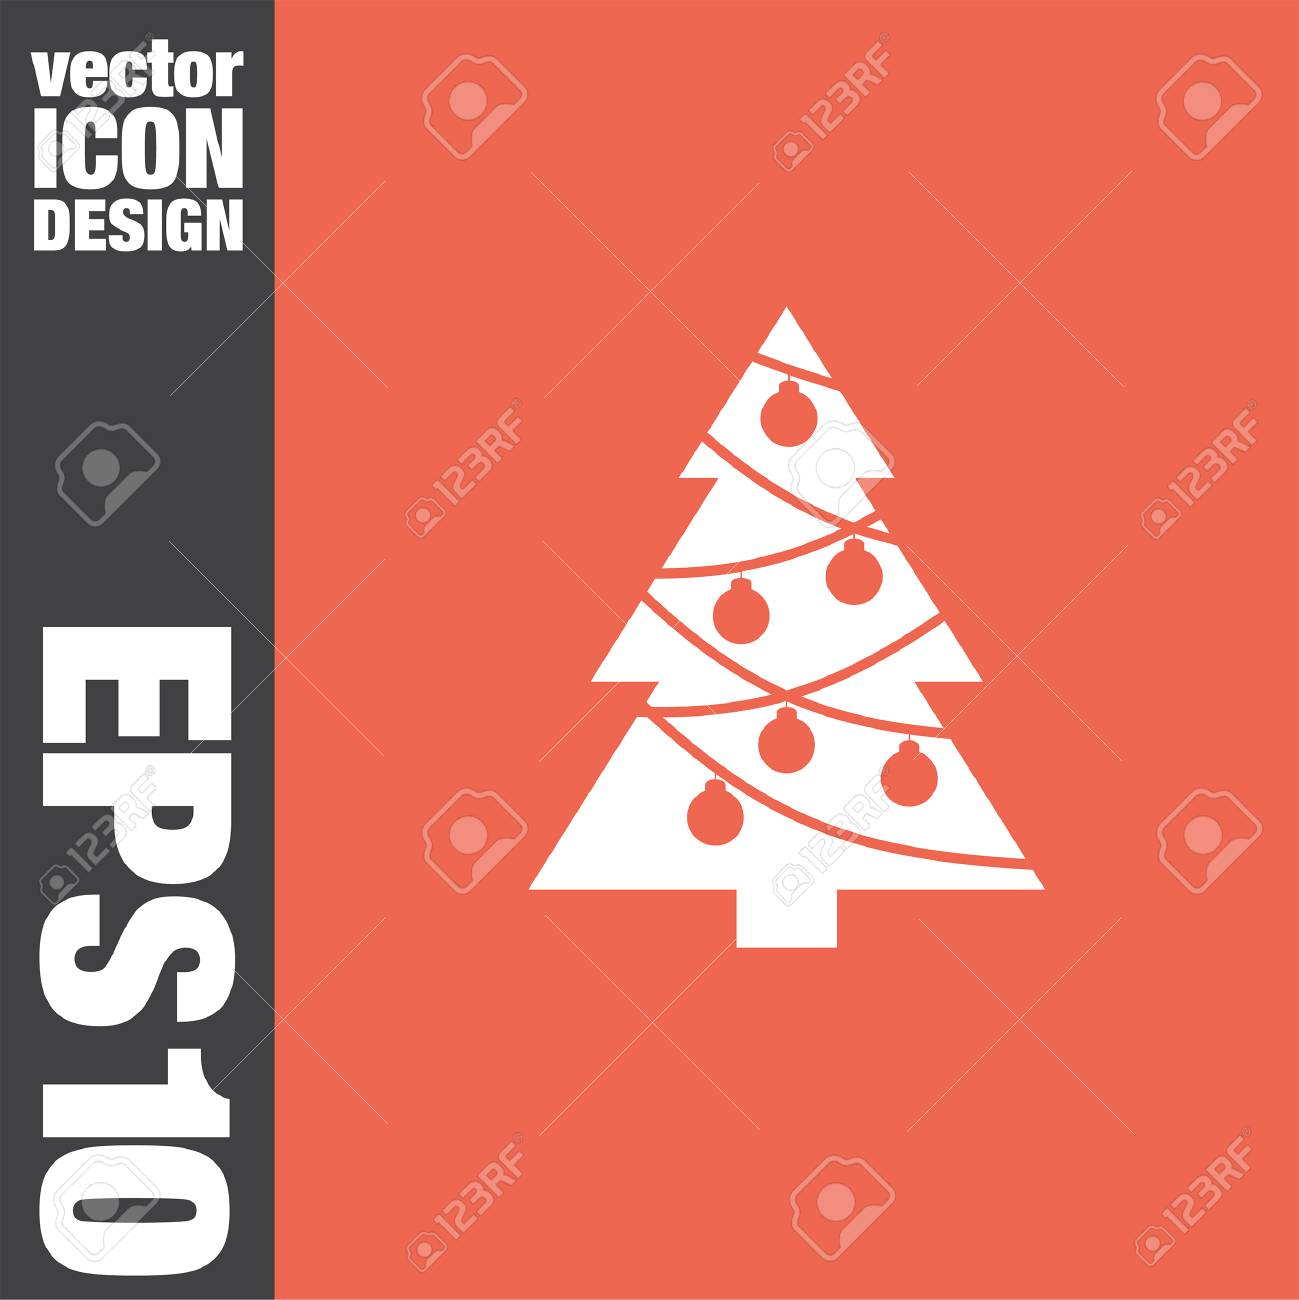 Christmas Tree Vector Icon Royalty Free Cliparts Vectors And Stock